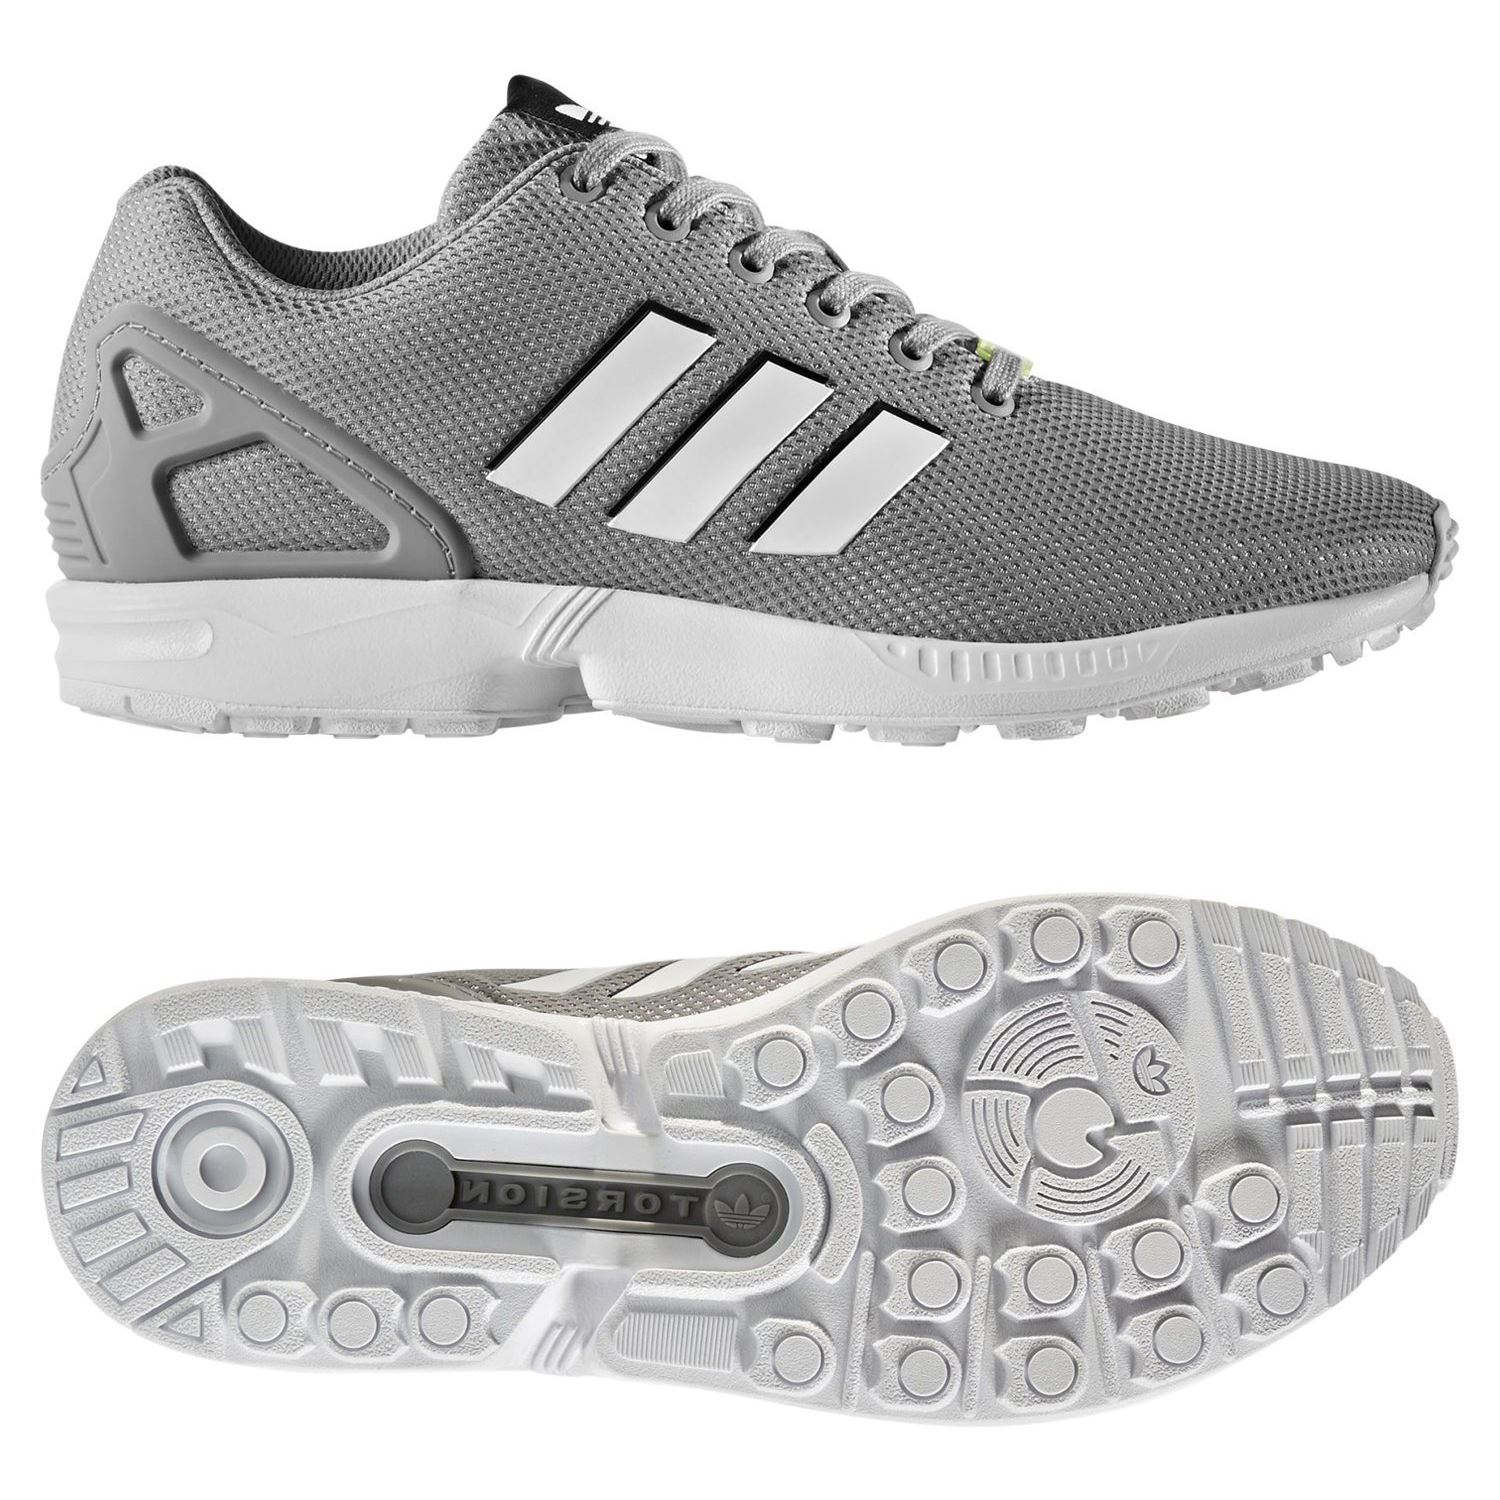 1481d7cb1218 Details about adidas ORIGINALS MEN S ZX FLUX TRAINERS GREY SNEAKERS SHOES  RETRO RUNNING